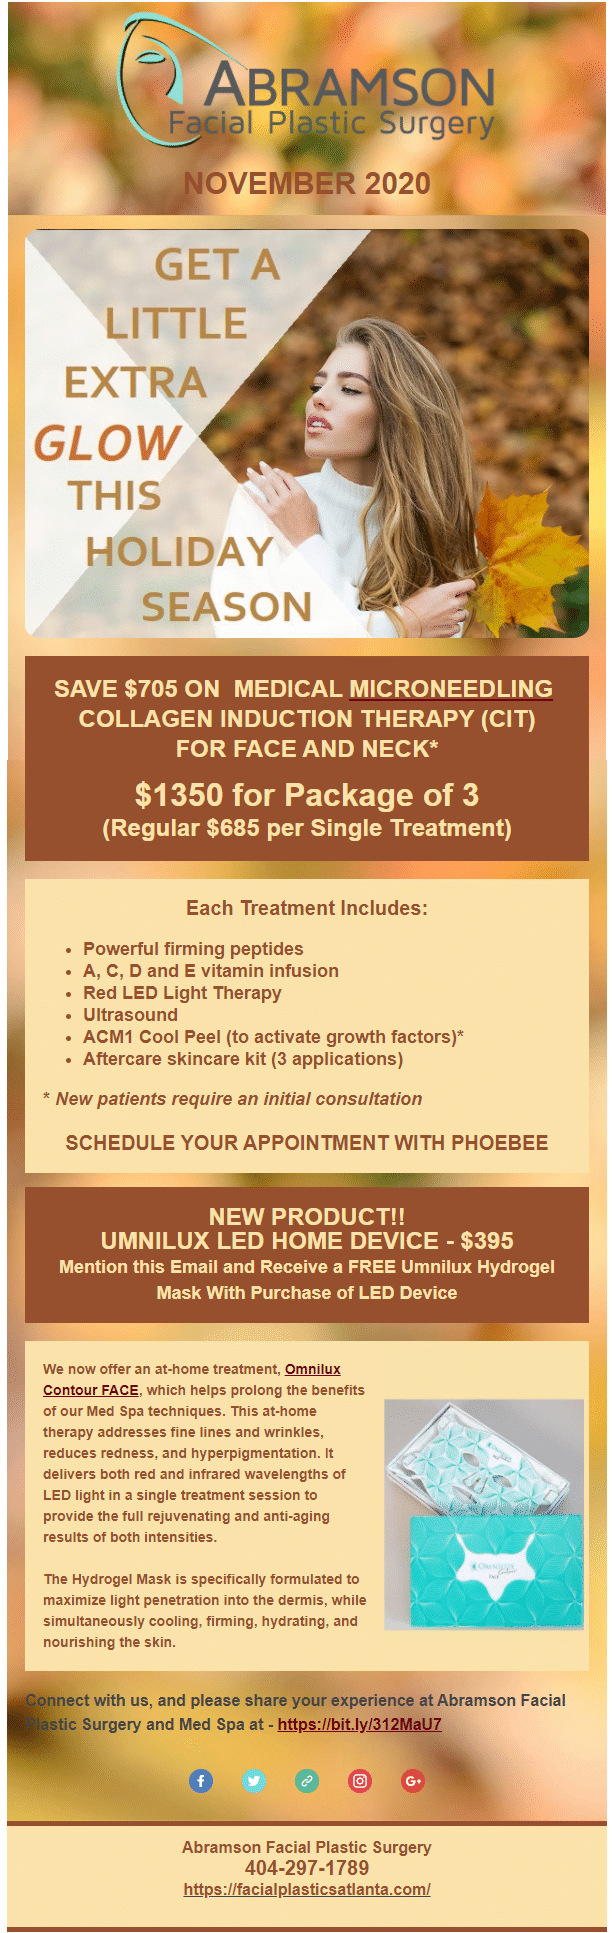 microneedling, ultrasound, red LED